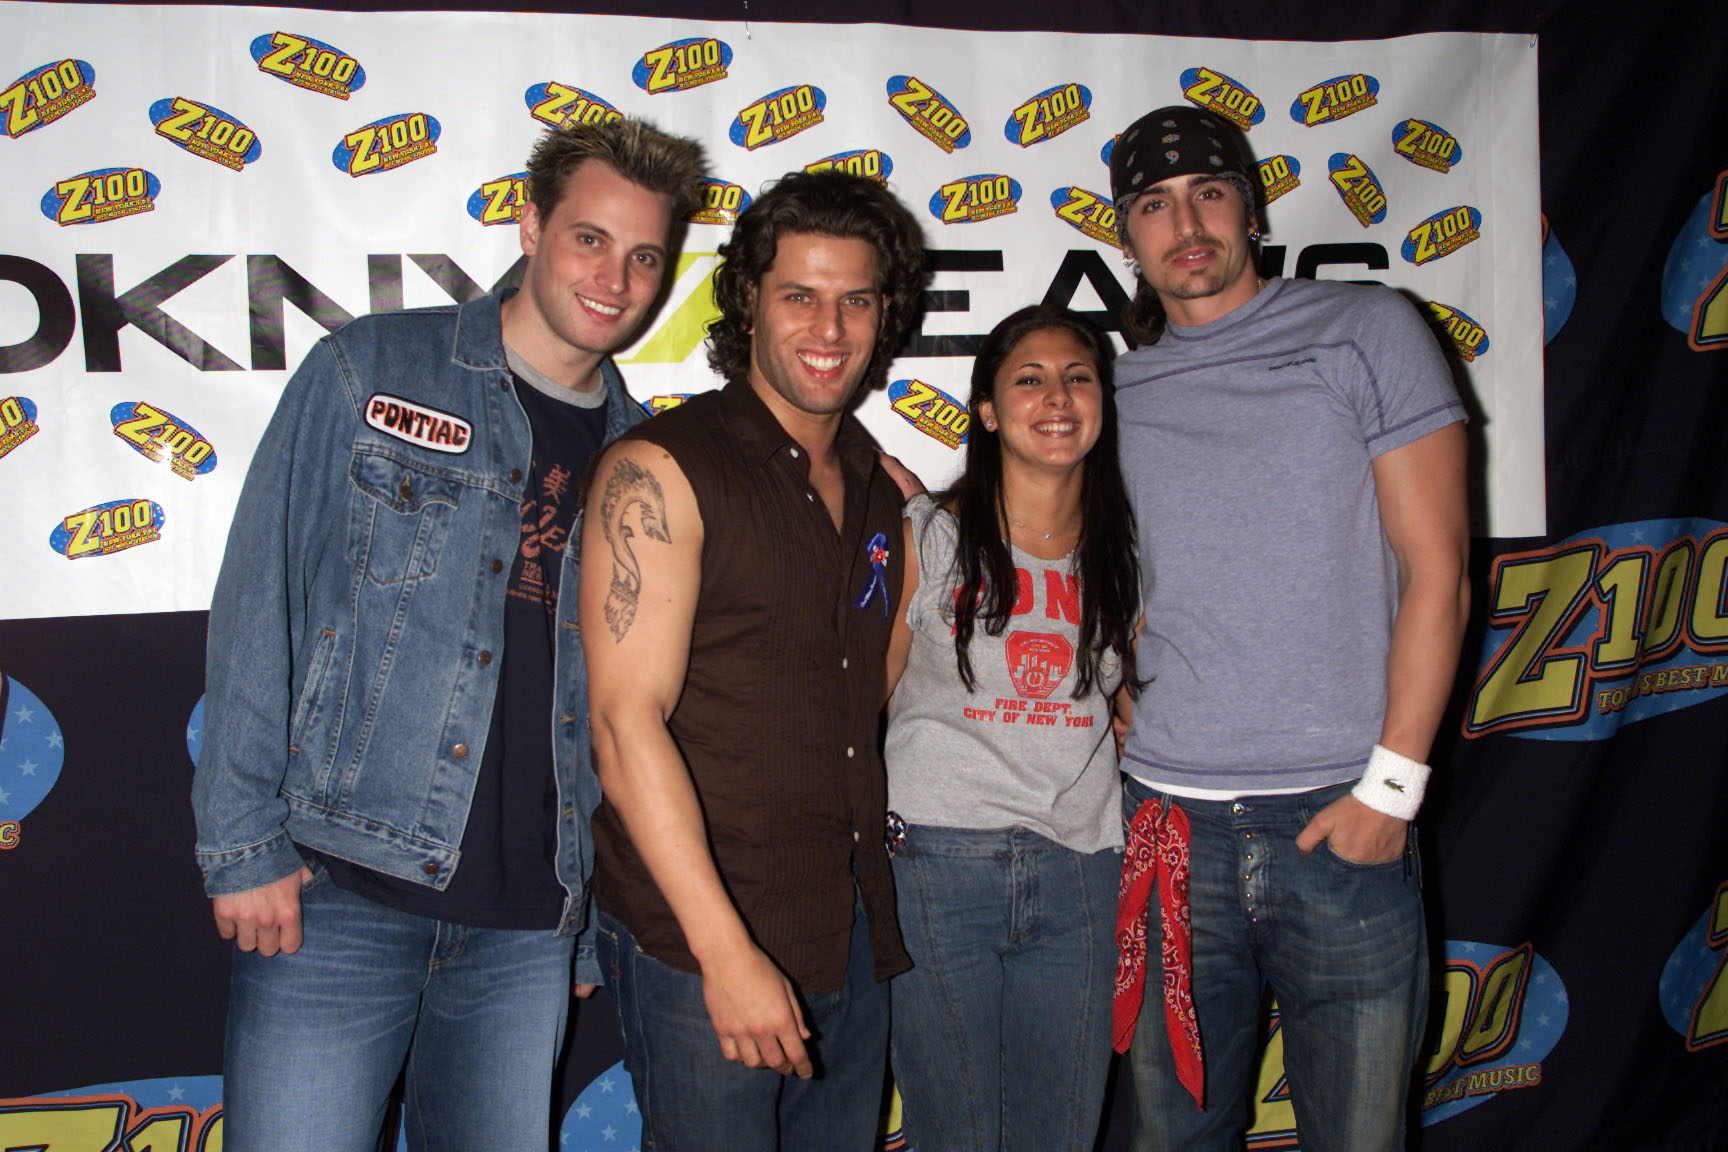 Jamie Lynn Sigler, of the Soprano's, joins Rich Cronin, Devin Lima, and Brad Fischetti of LFO backstage at the Z100 School Spirit Concert at the Vanderbilt Theater in Long Island, New York on October 12, 2001. (Photo by Gabe Palacio/ImageDirect)